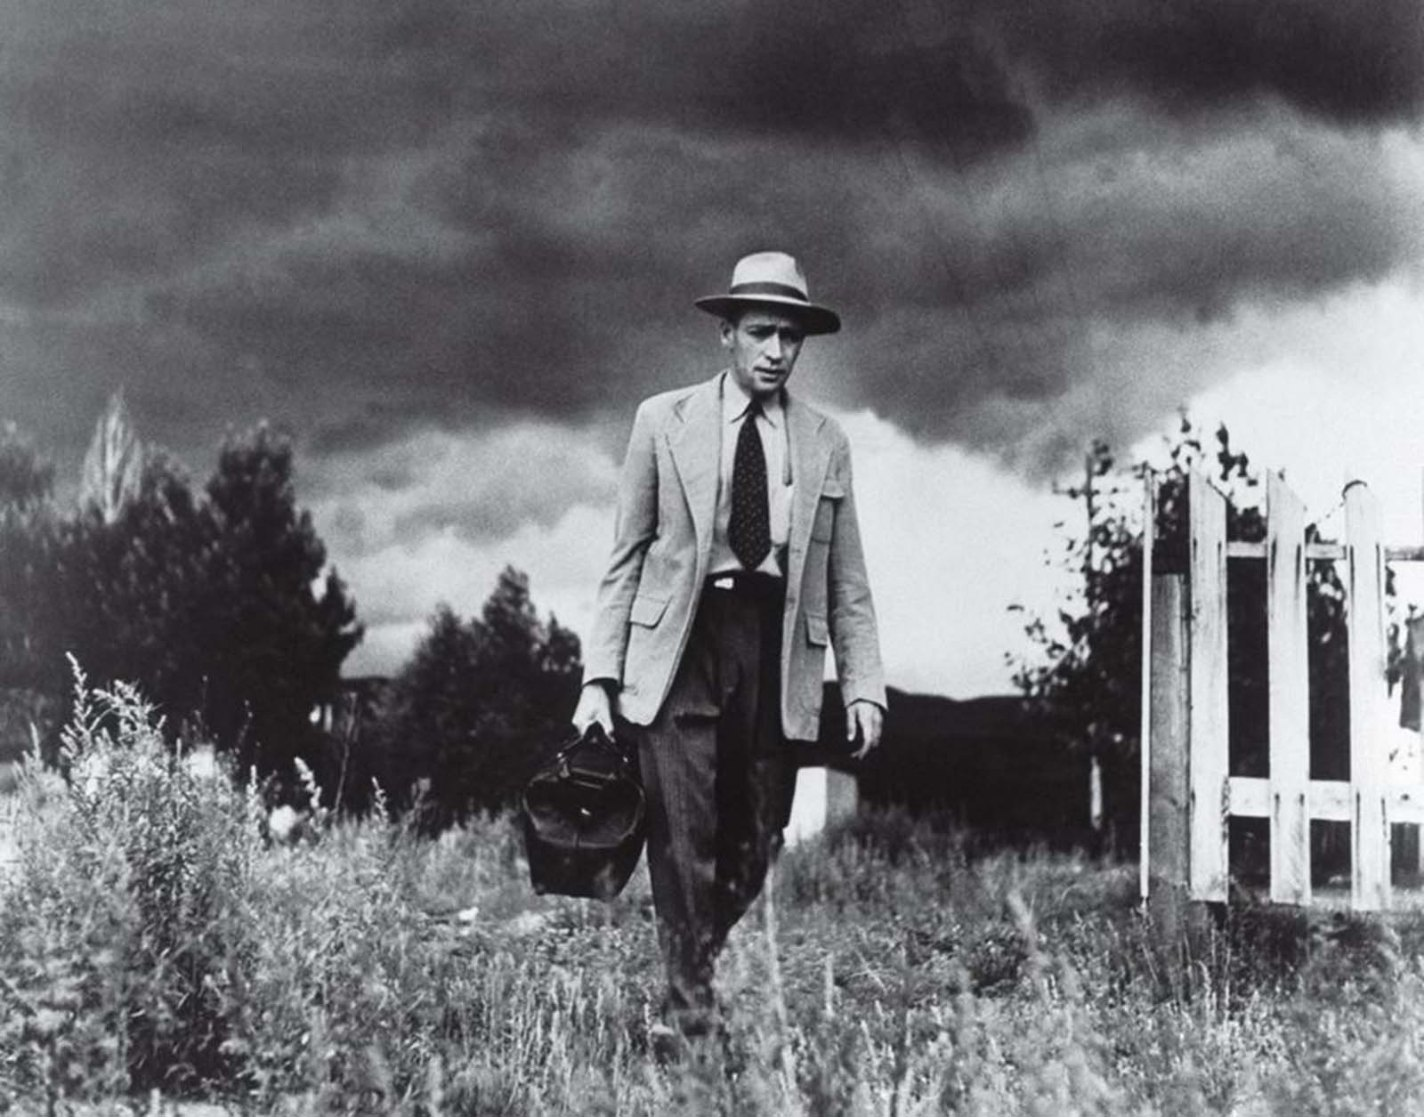 Country Doctor, W. Eugene Smith, 1948